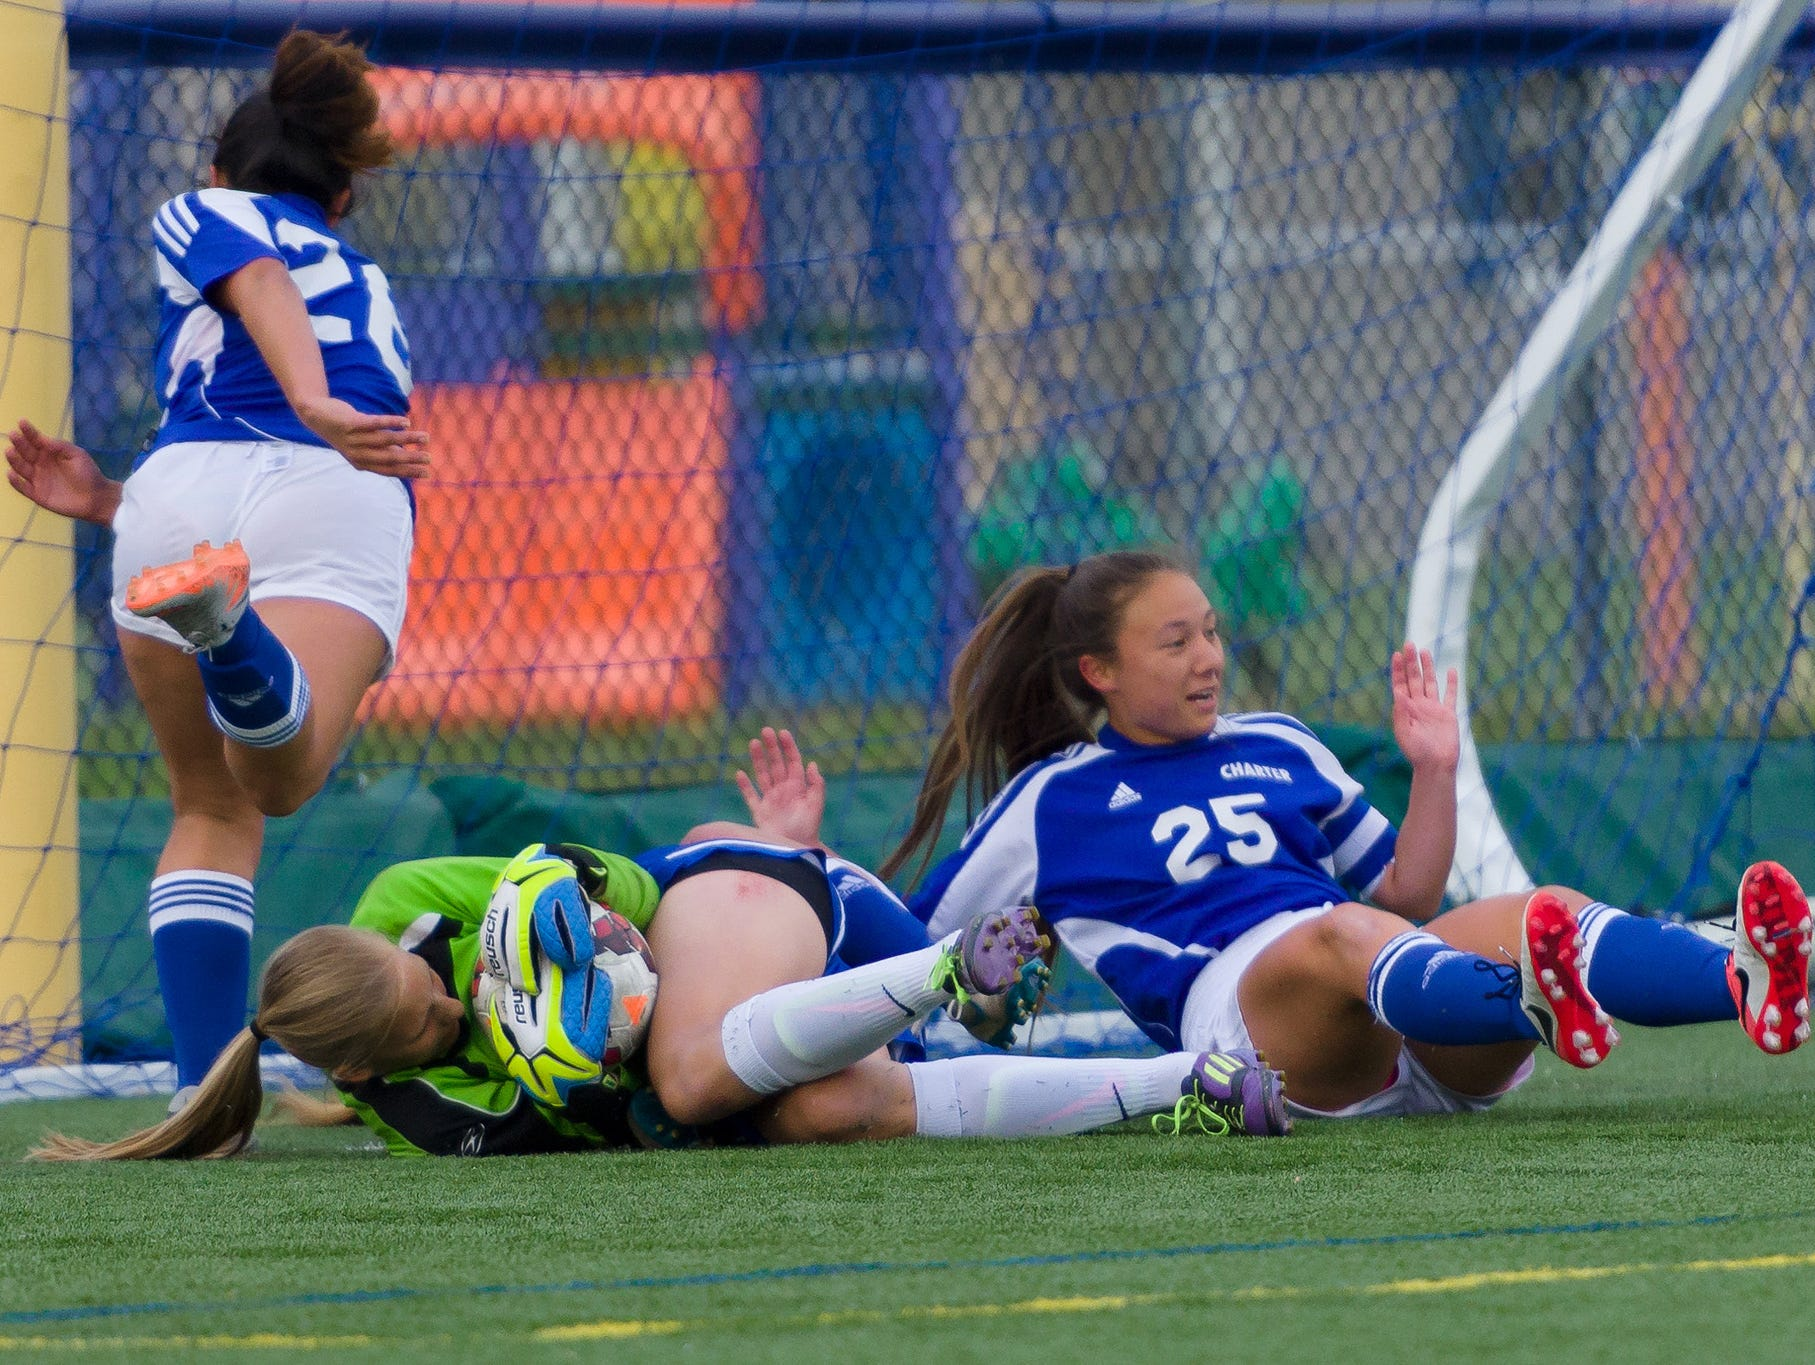 Taylor Wolf (9) makes a save for Middletown as Charter;s Felicia Flores (26) and Alli Munro (25) avoid contacting her in a Charter at Middletown girls soccer game on Wednesday.